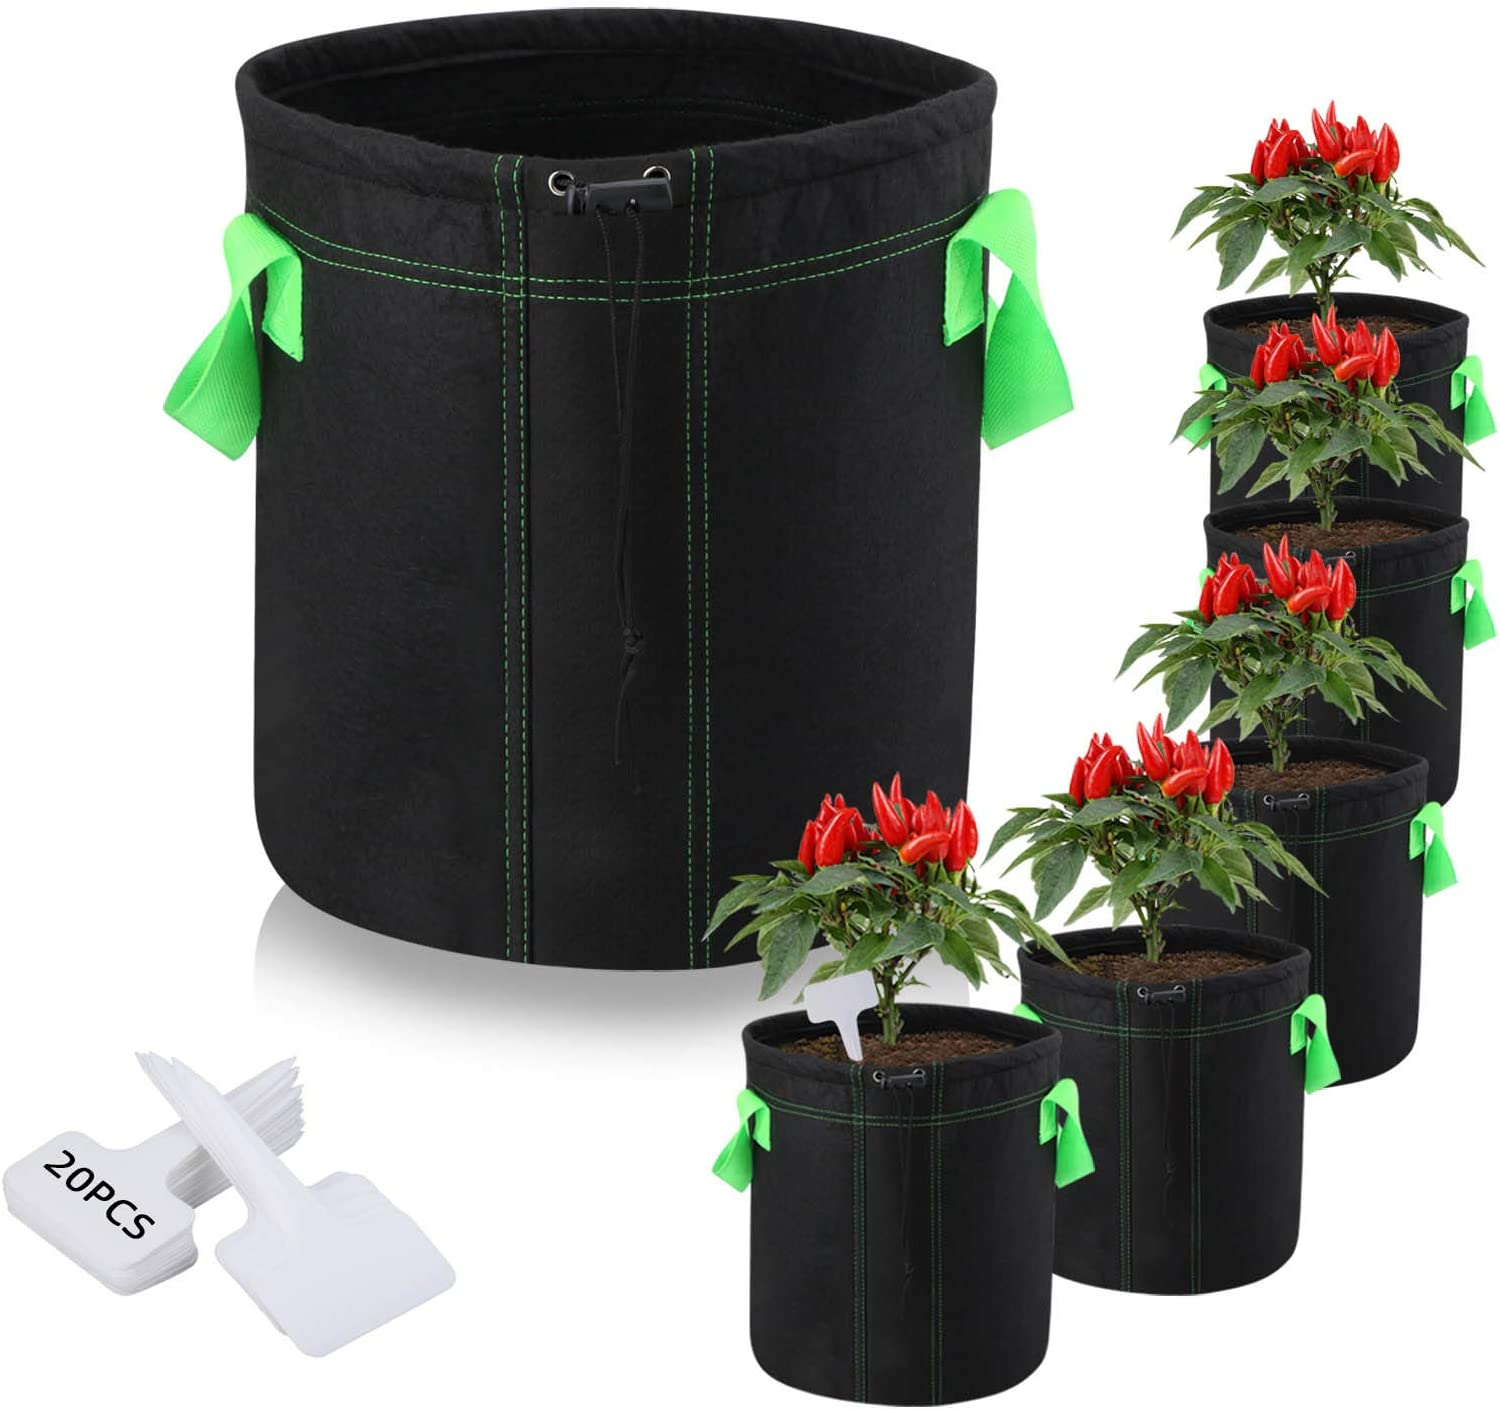 [New Version]6-Pack 5 Gallon Plant Grow Bags, Premium Aeration Nonwoven Cloth Fabric Grow Bags with Sturdy Handle and Shrink String, Flowers/Vegetable Pots Container for Nursery Garden Planting